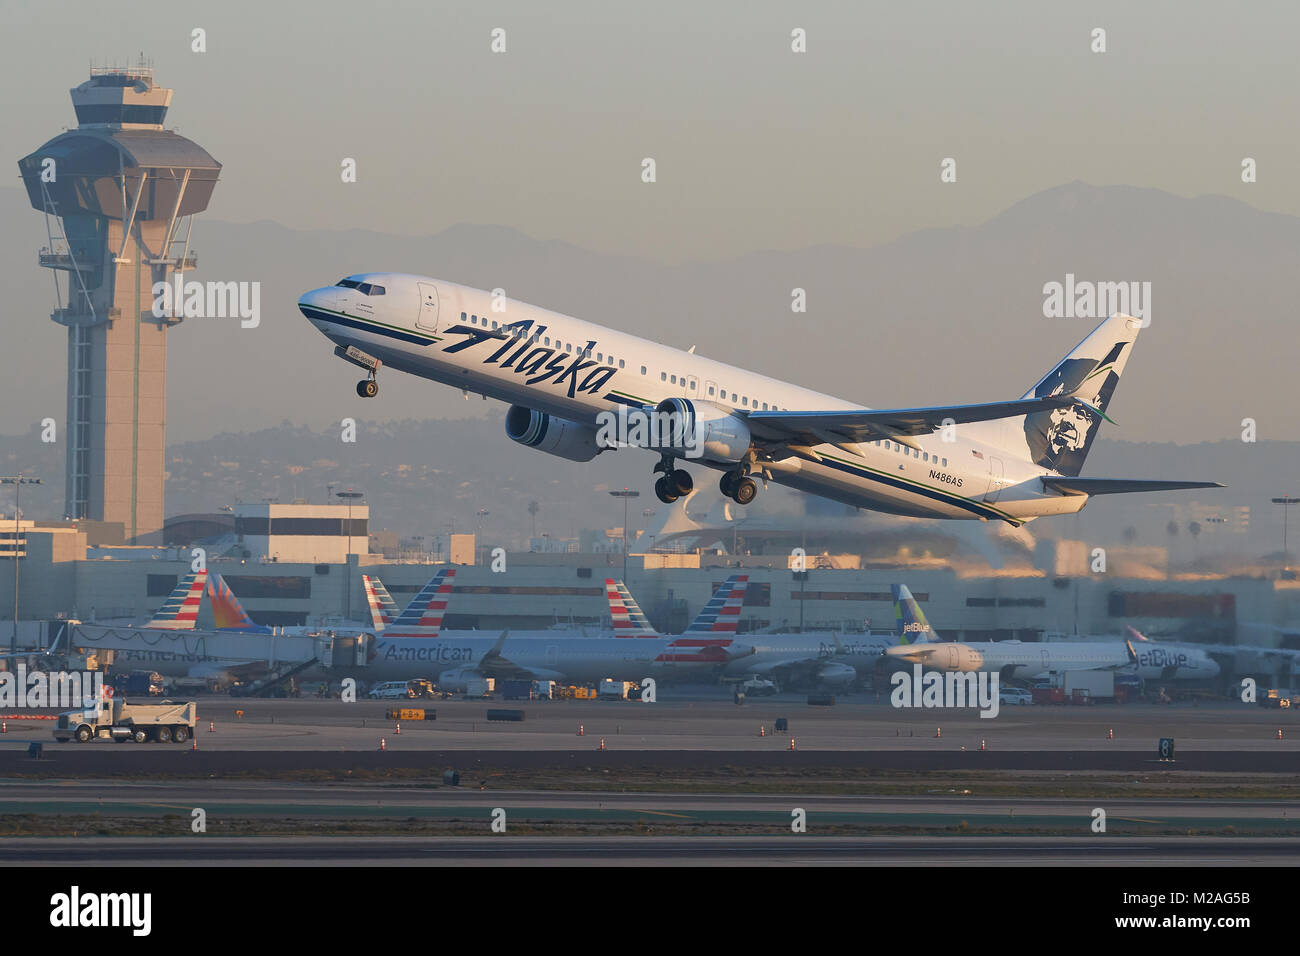 Alaska airlines ticker symbol images symbol and sign ideas alaska airlines stock photos alaska airlines stock images alamy alaska airlines boeing 737 900er jet airliner buycottarizona